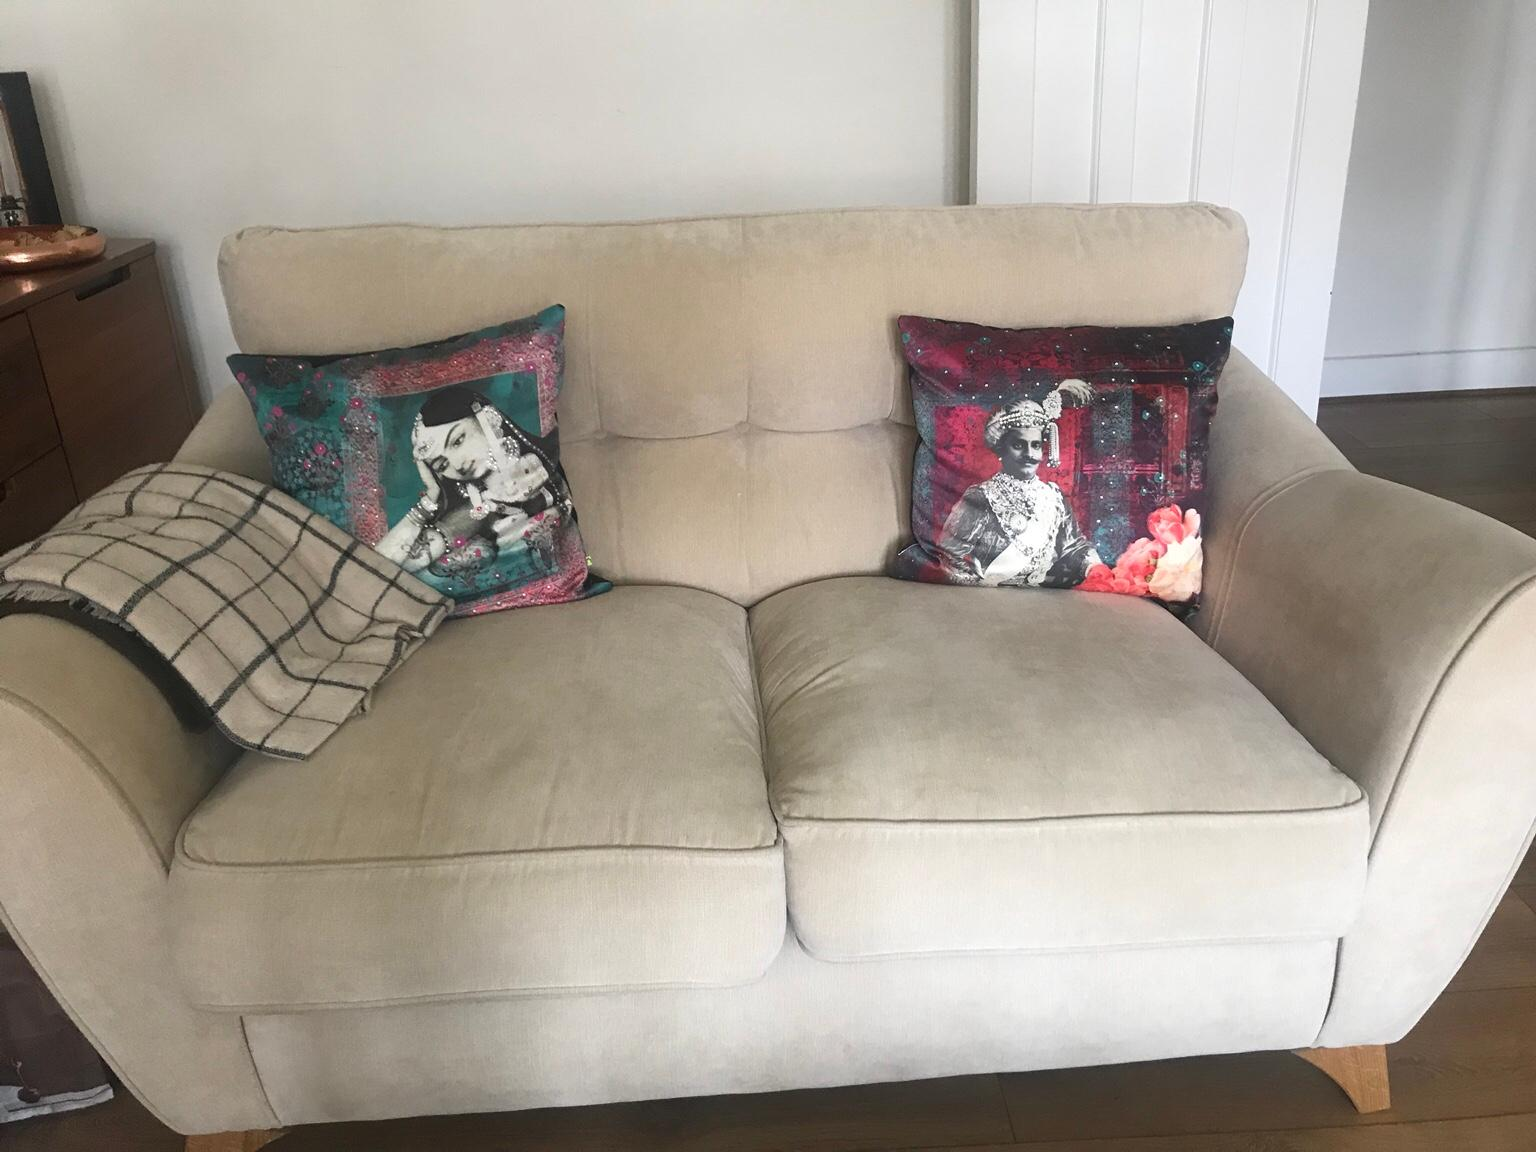 3 And 2 Seater Sofa Set For Sale In Br3 Bromley For 650 00 For Sale Shpock